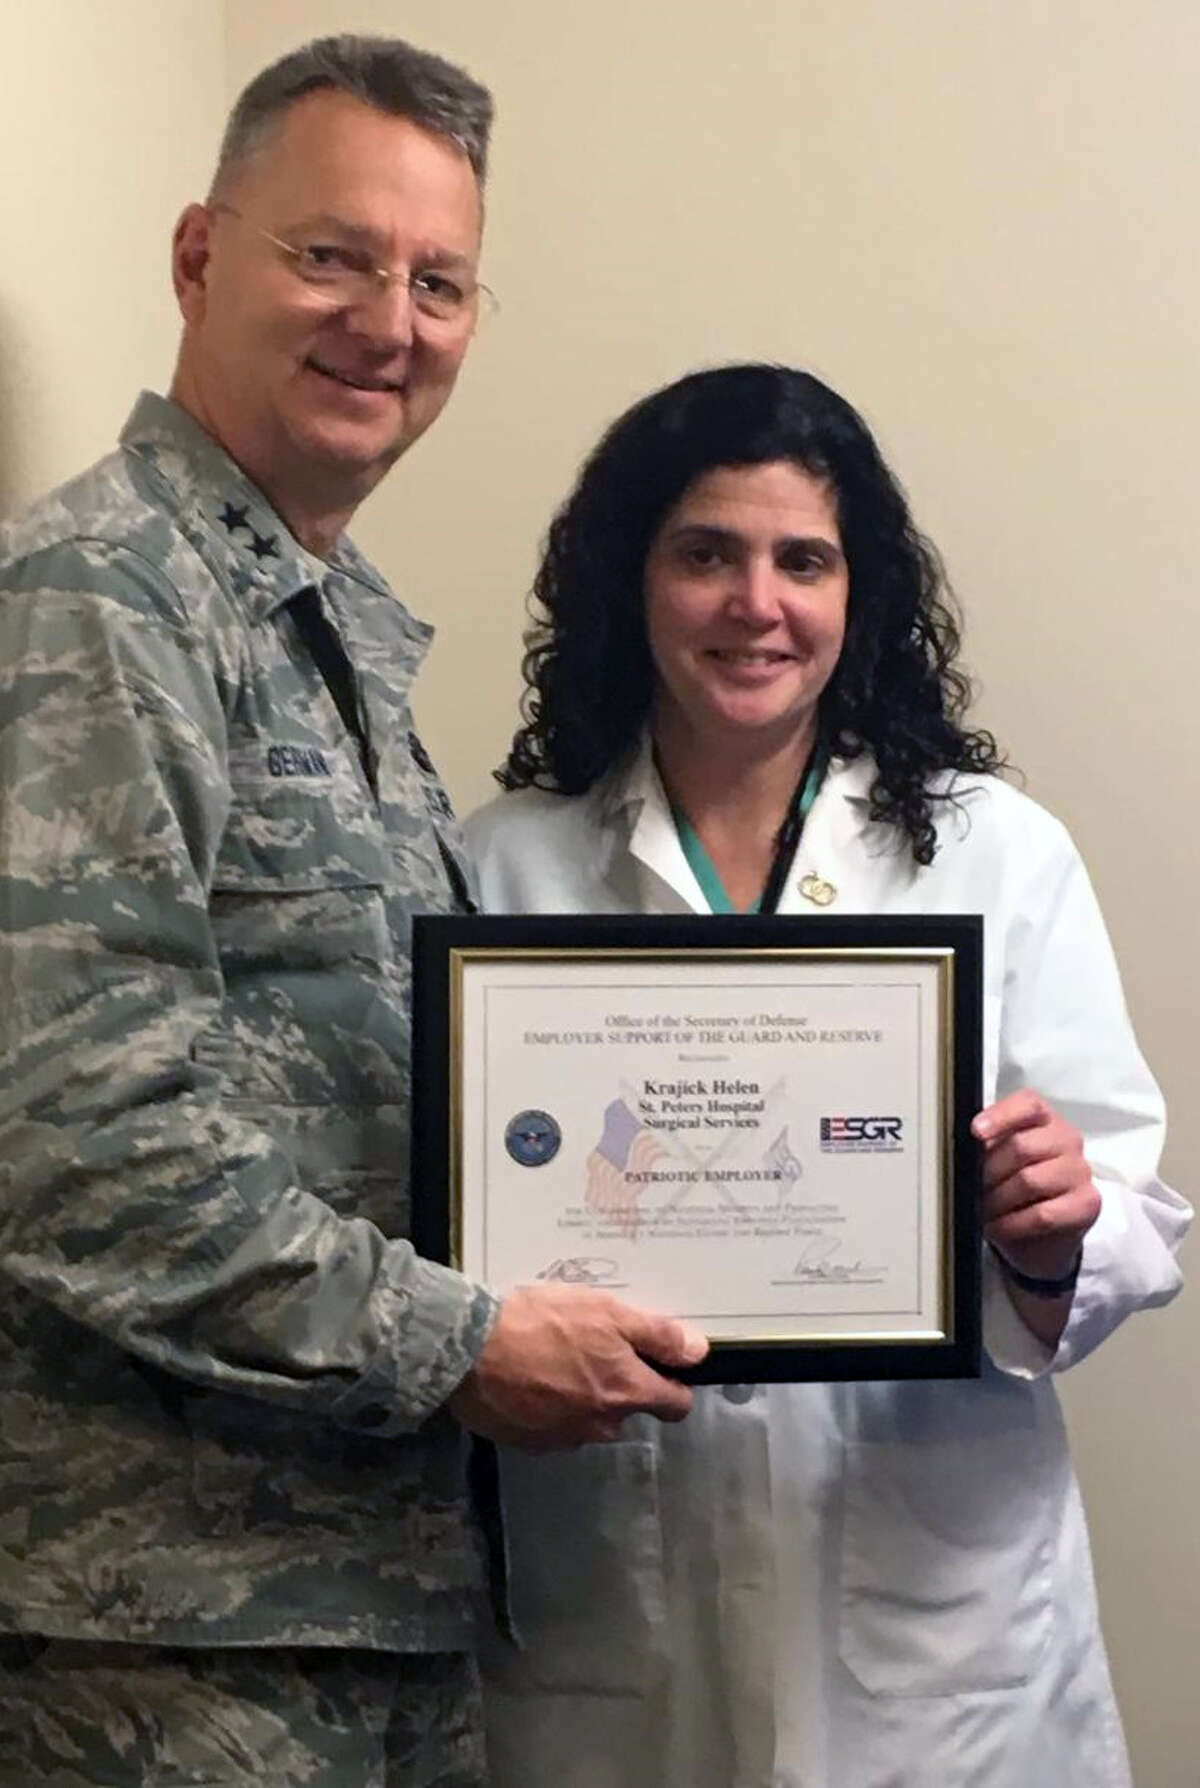 Major General Anthony P. German, commander of the New York Air National Guard, presents Helen Krajick, manager of the operating room at St. Peter's Hospital, with the Patriot Award in recognition of her support of Captain Donna McCormick, a nurse and an employee in the U.S. Armed Forces. (submitted photo)